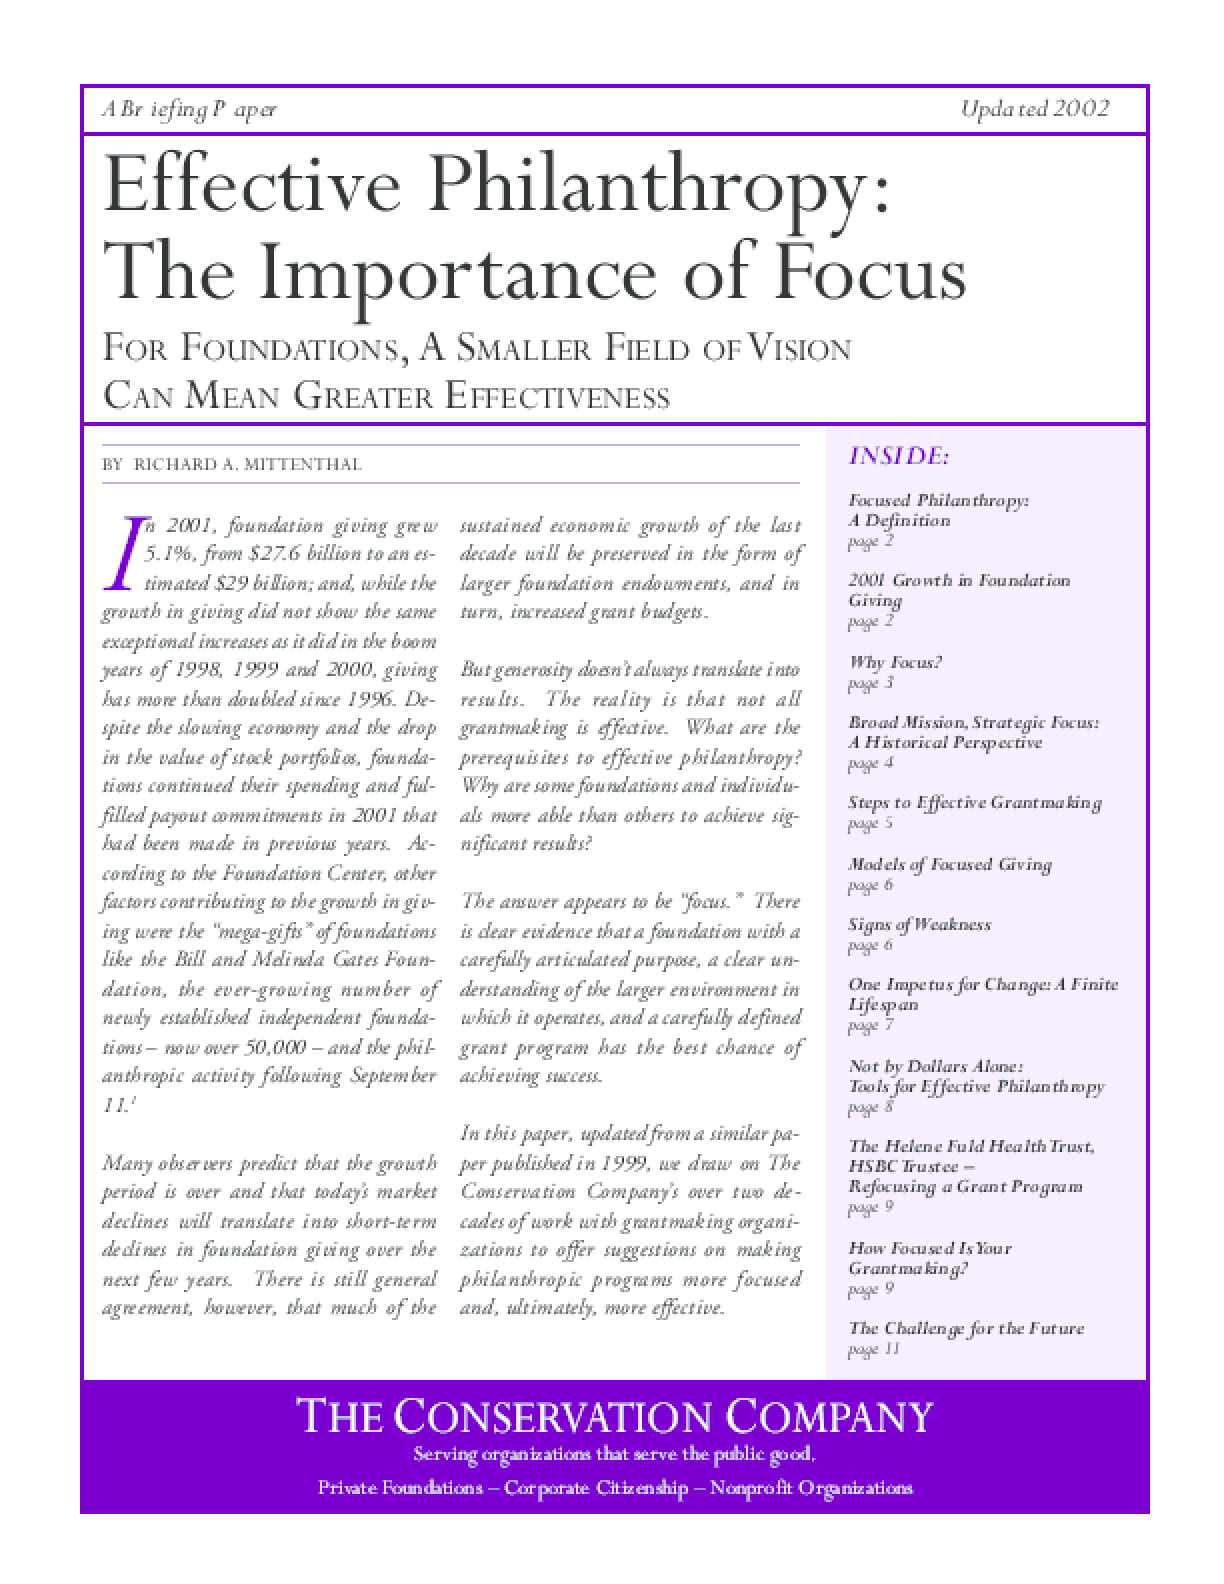 Effective Philanthropy: The Importance Of Focus